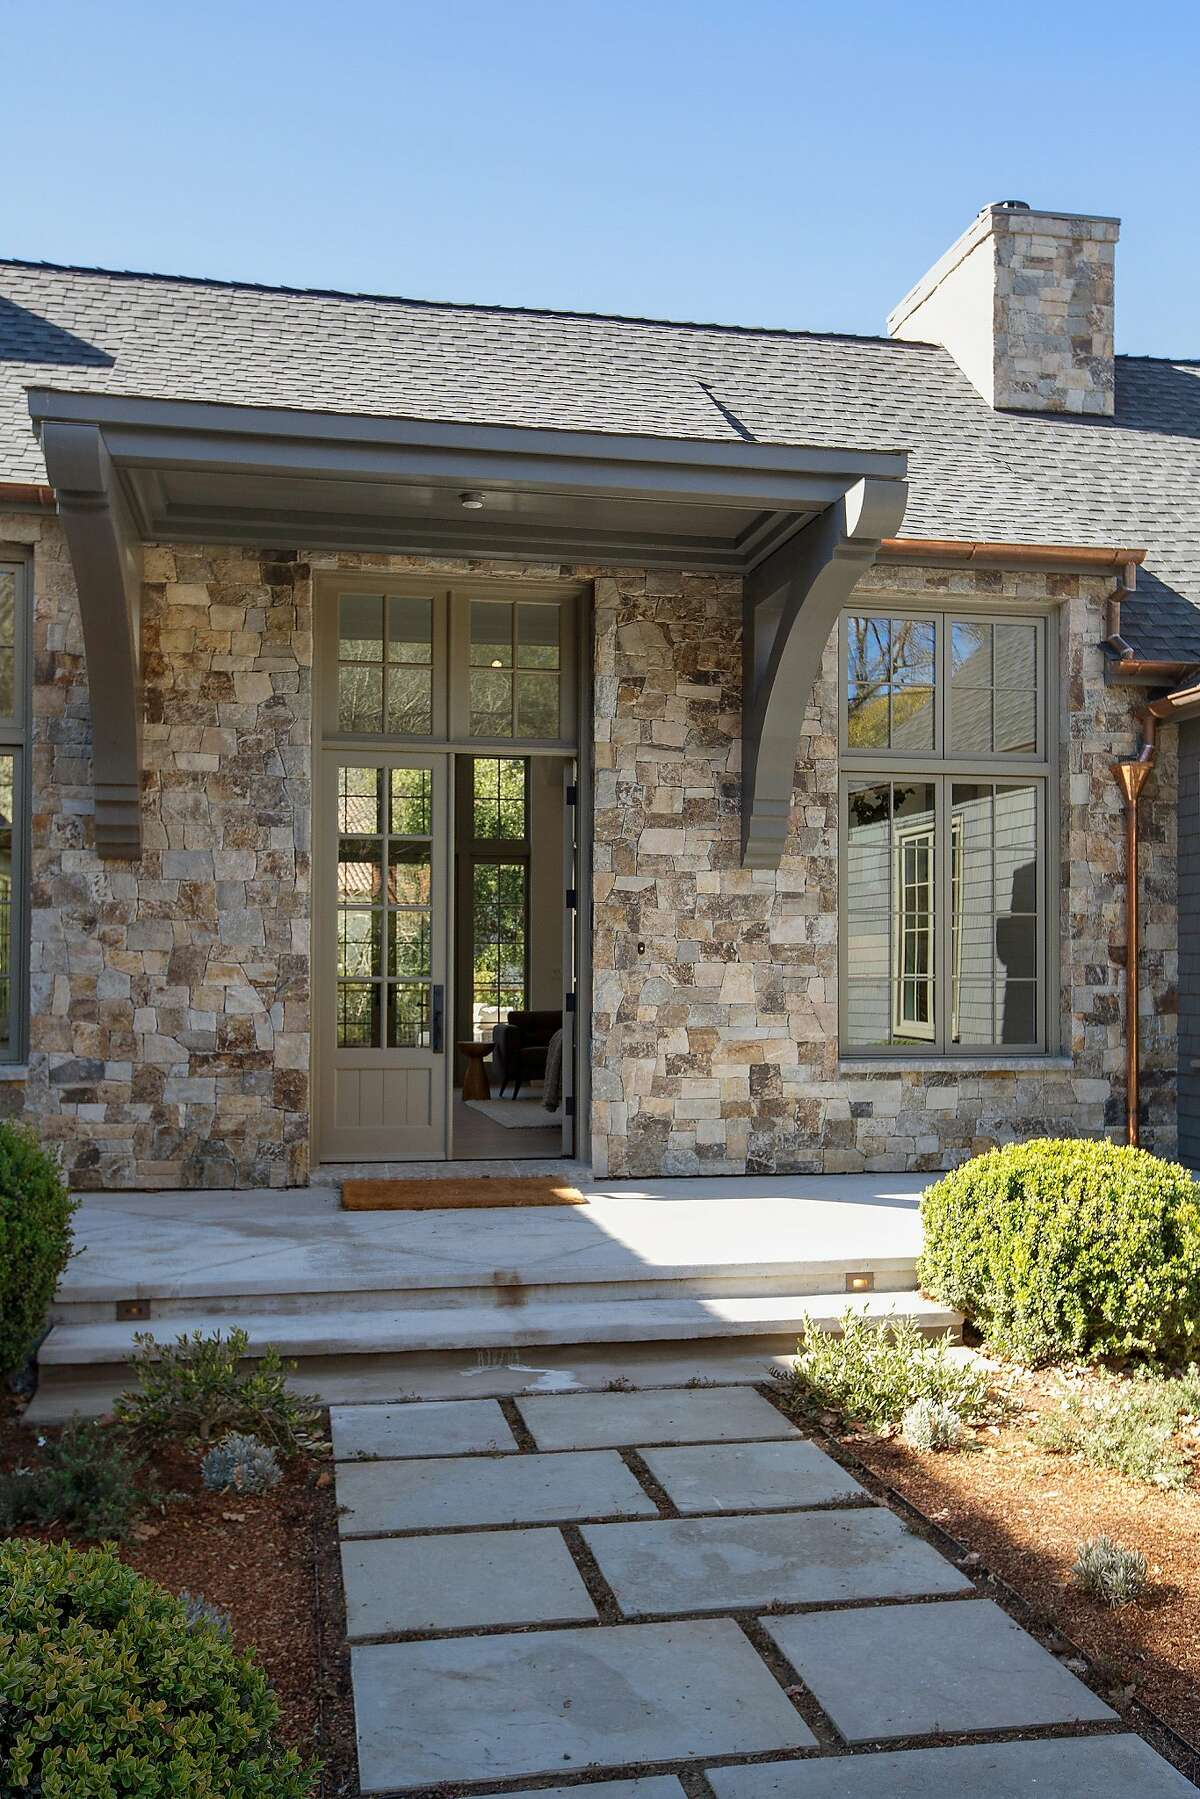 A series of concrete pavers leads to the home's stately, yet inviting, entryway.